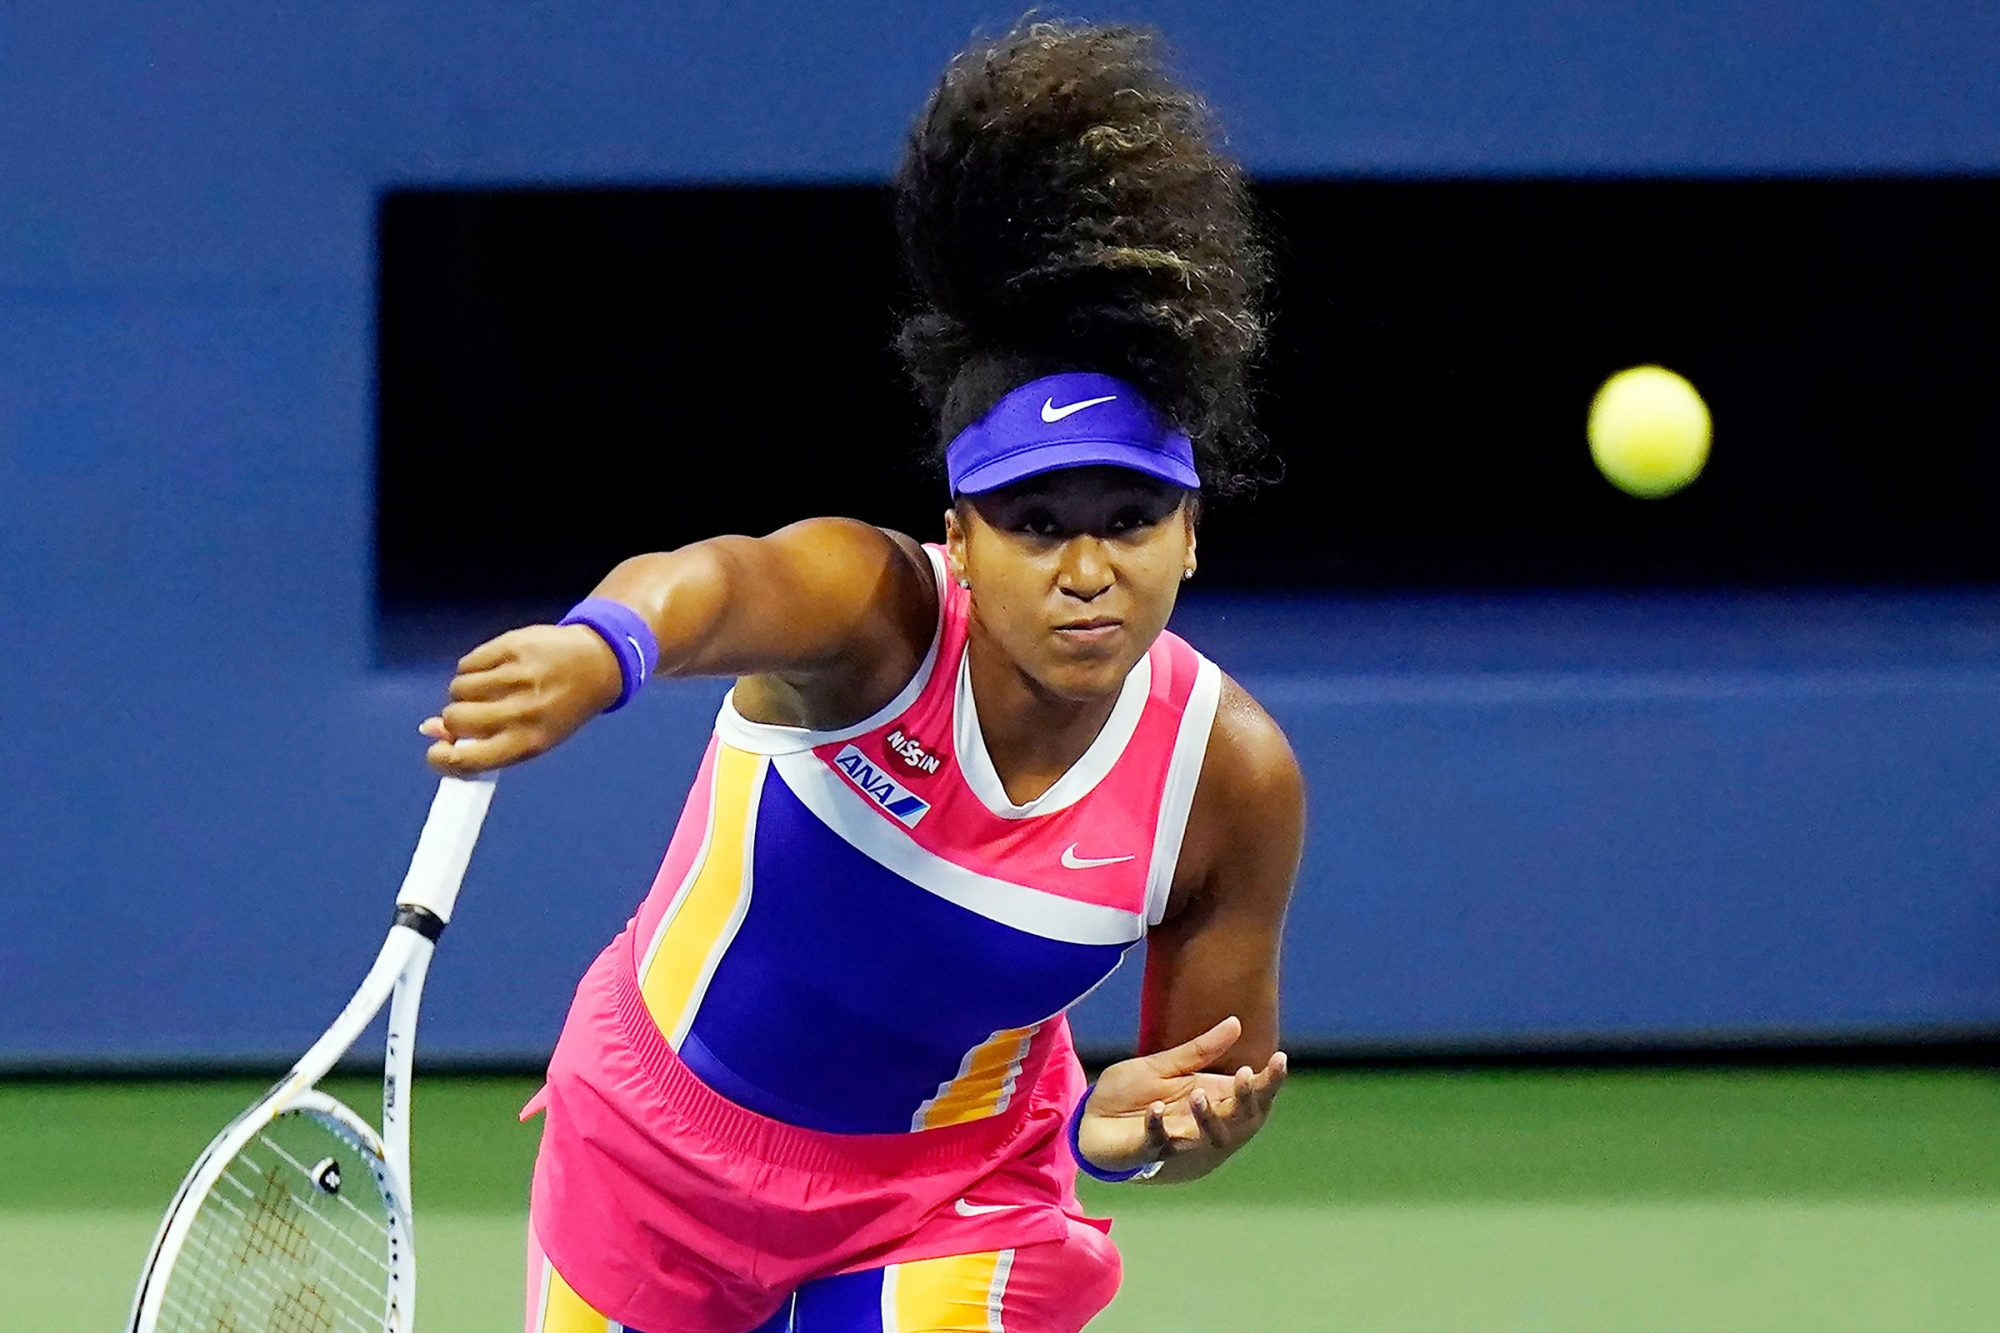 Naomi Osaka, of Japan, returns a shot to Anett Kontaveit, of Estonia, during the fourth round of the US Open tennis championships, in New York